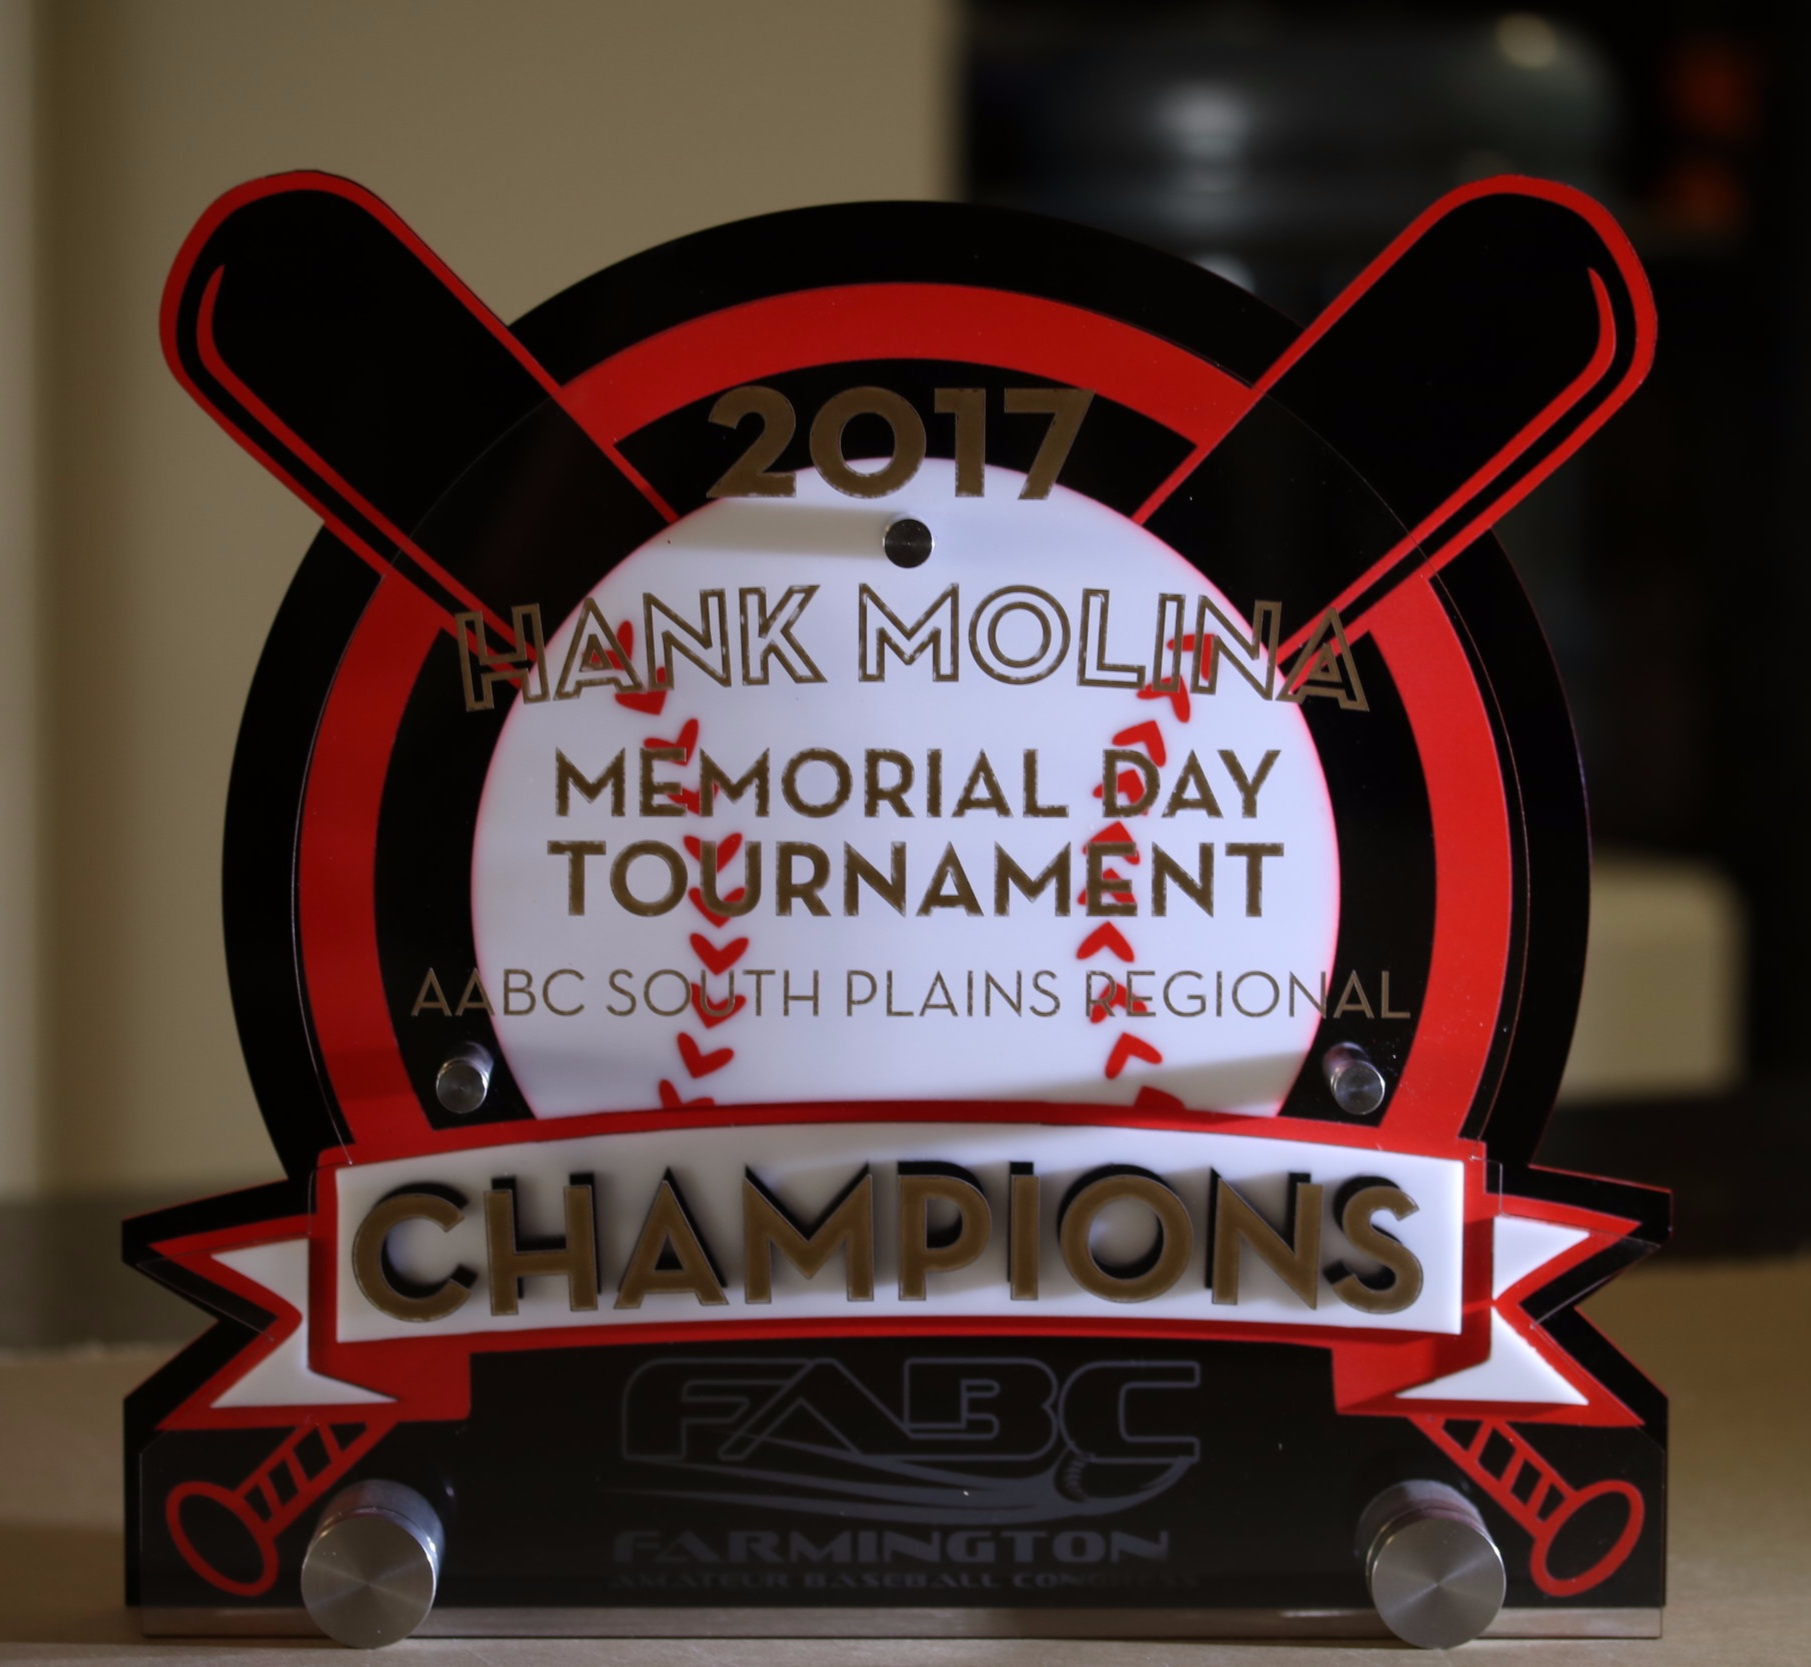 American Amateur Baseball Congress - Memorial Day Tournament Champion Award  Contact us for pricing information.